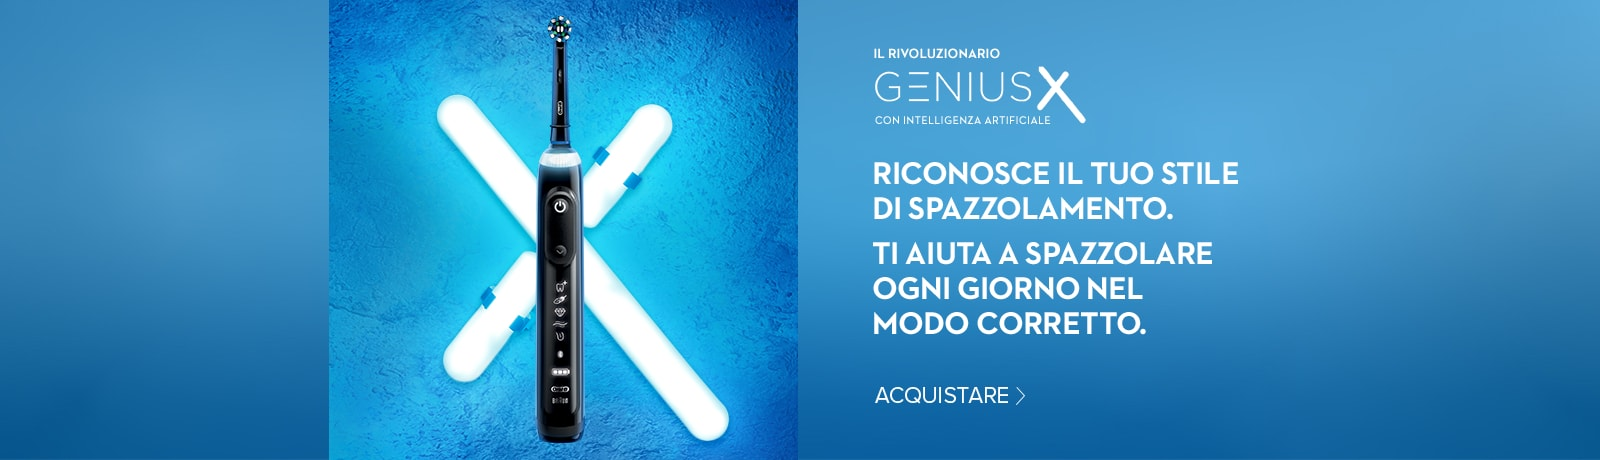 Oral-B Genius X con Intelligenza Artificiale